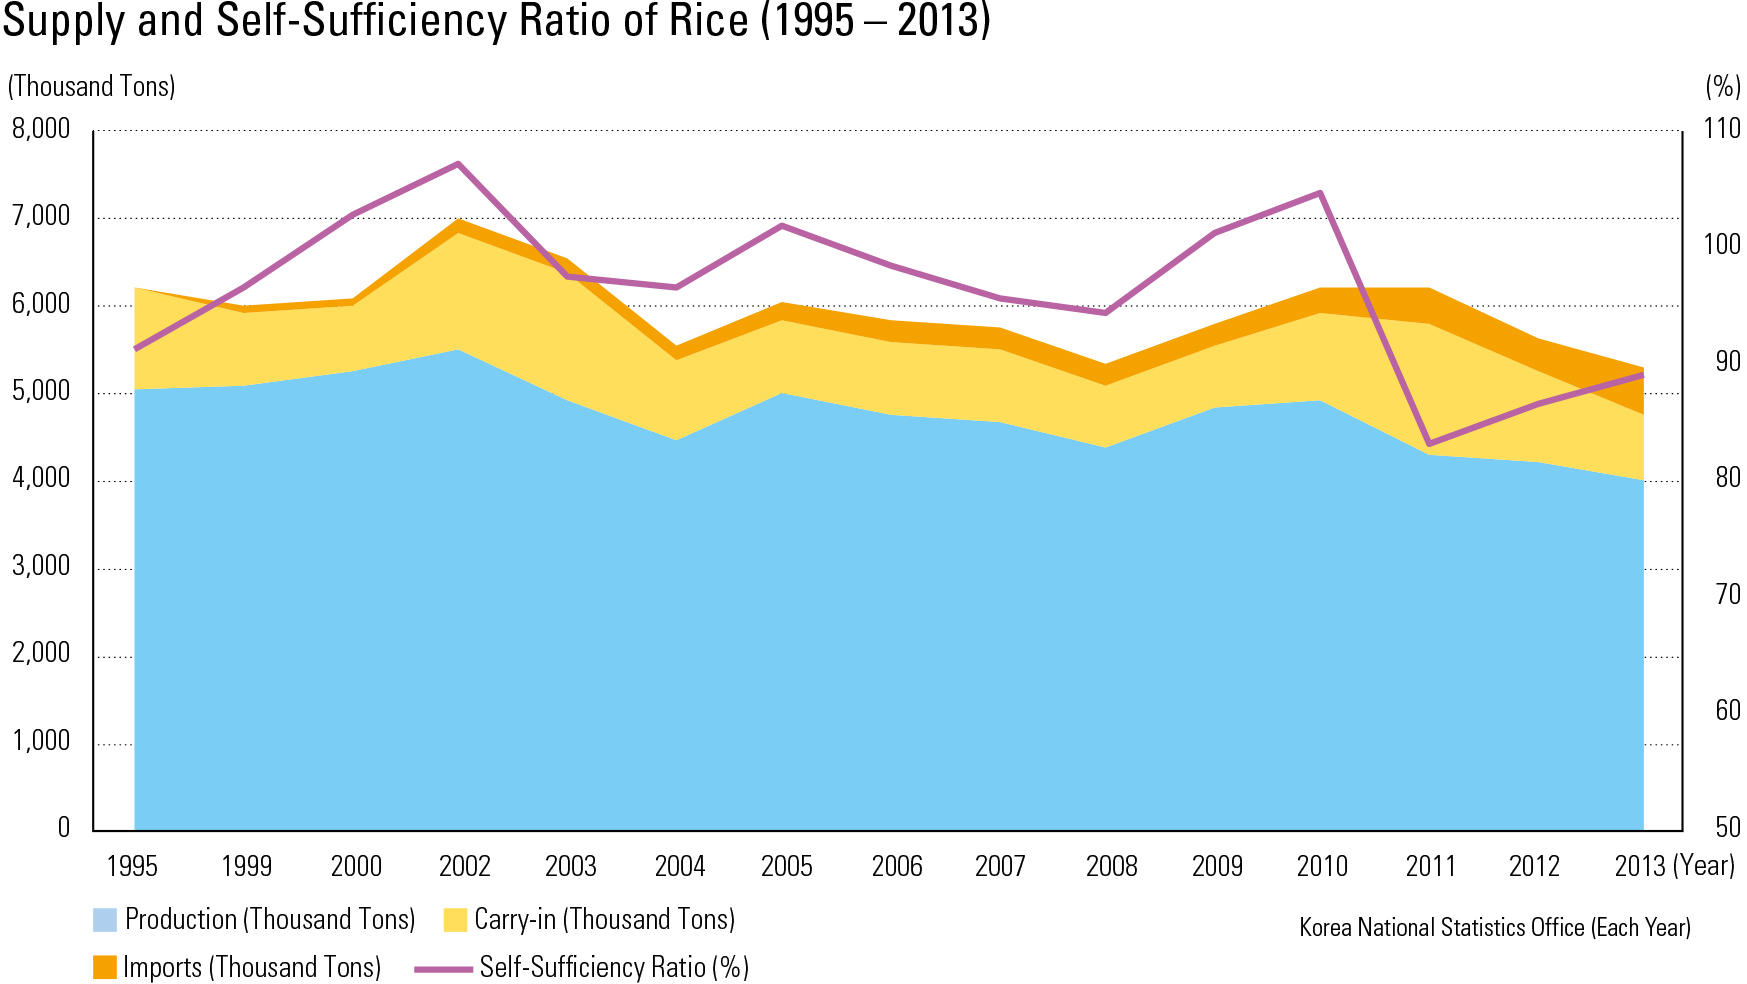 Supply and Self-Sufficiency Ratio of Rice (1995 – 2013)